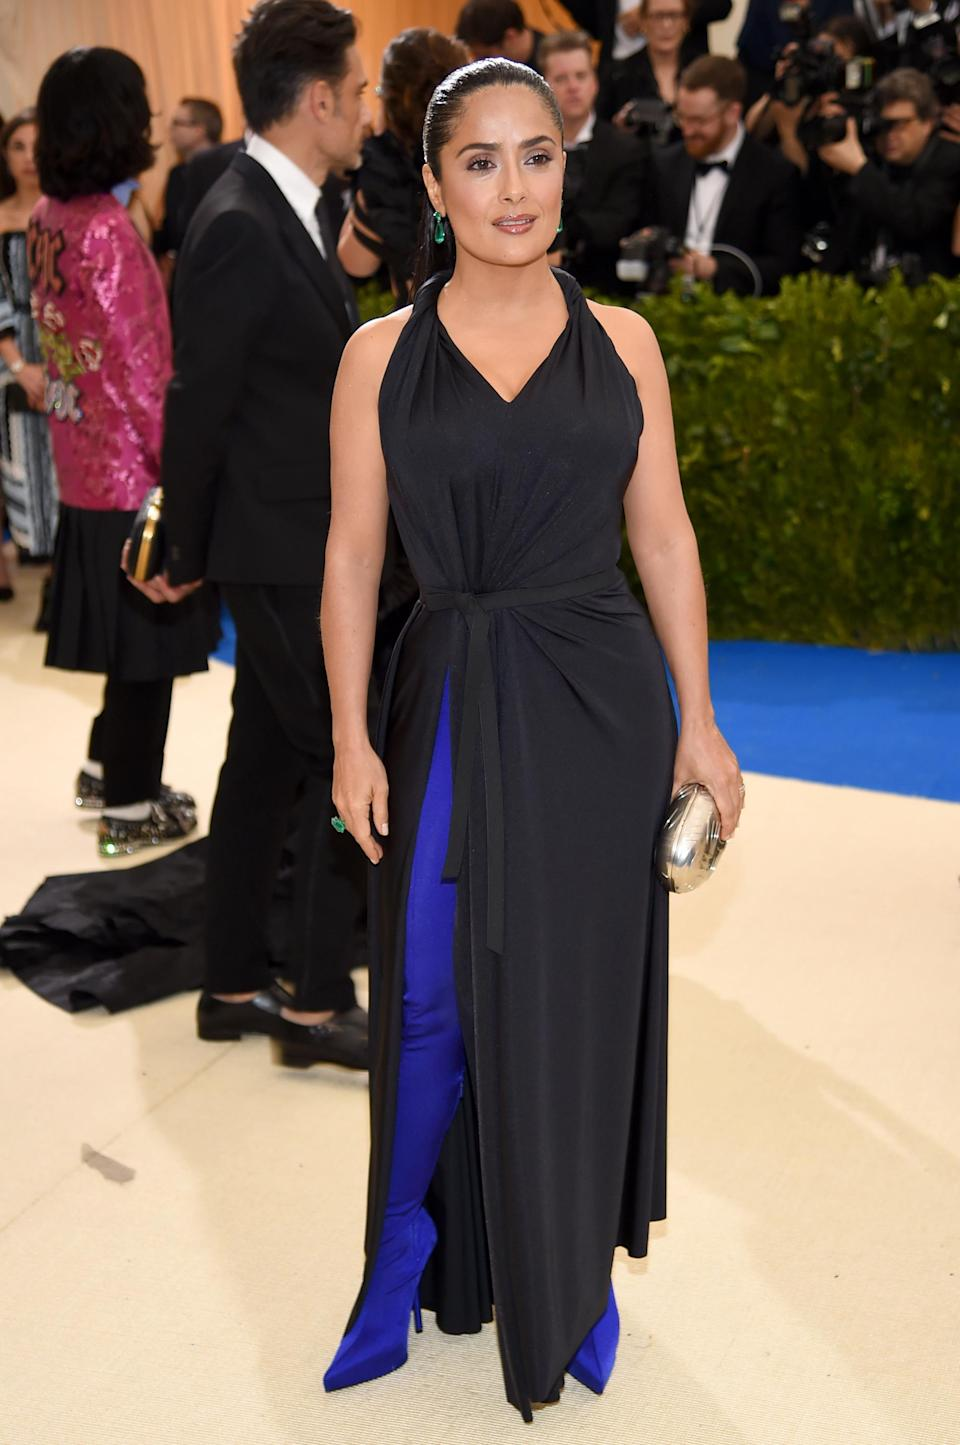 Salma Hayek wearing the shoe-trouser hybrid at the Met Gala. [Photo: Getty]